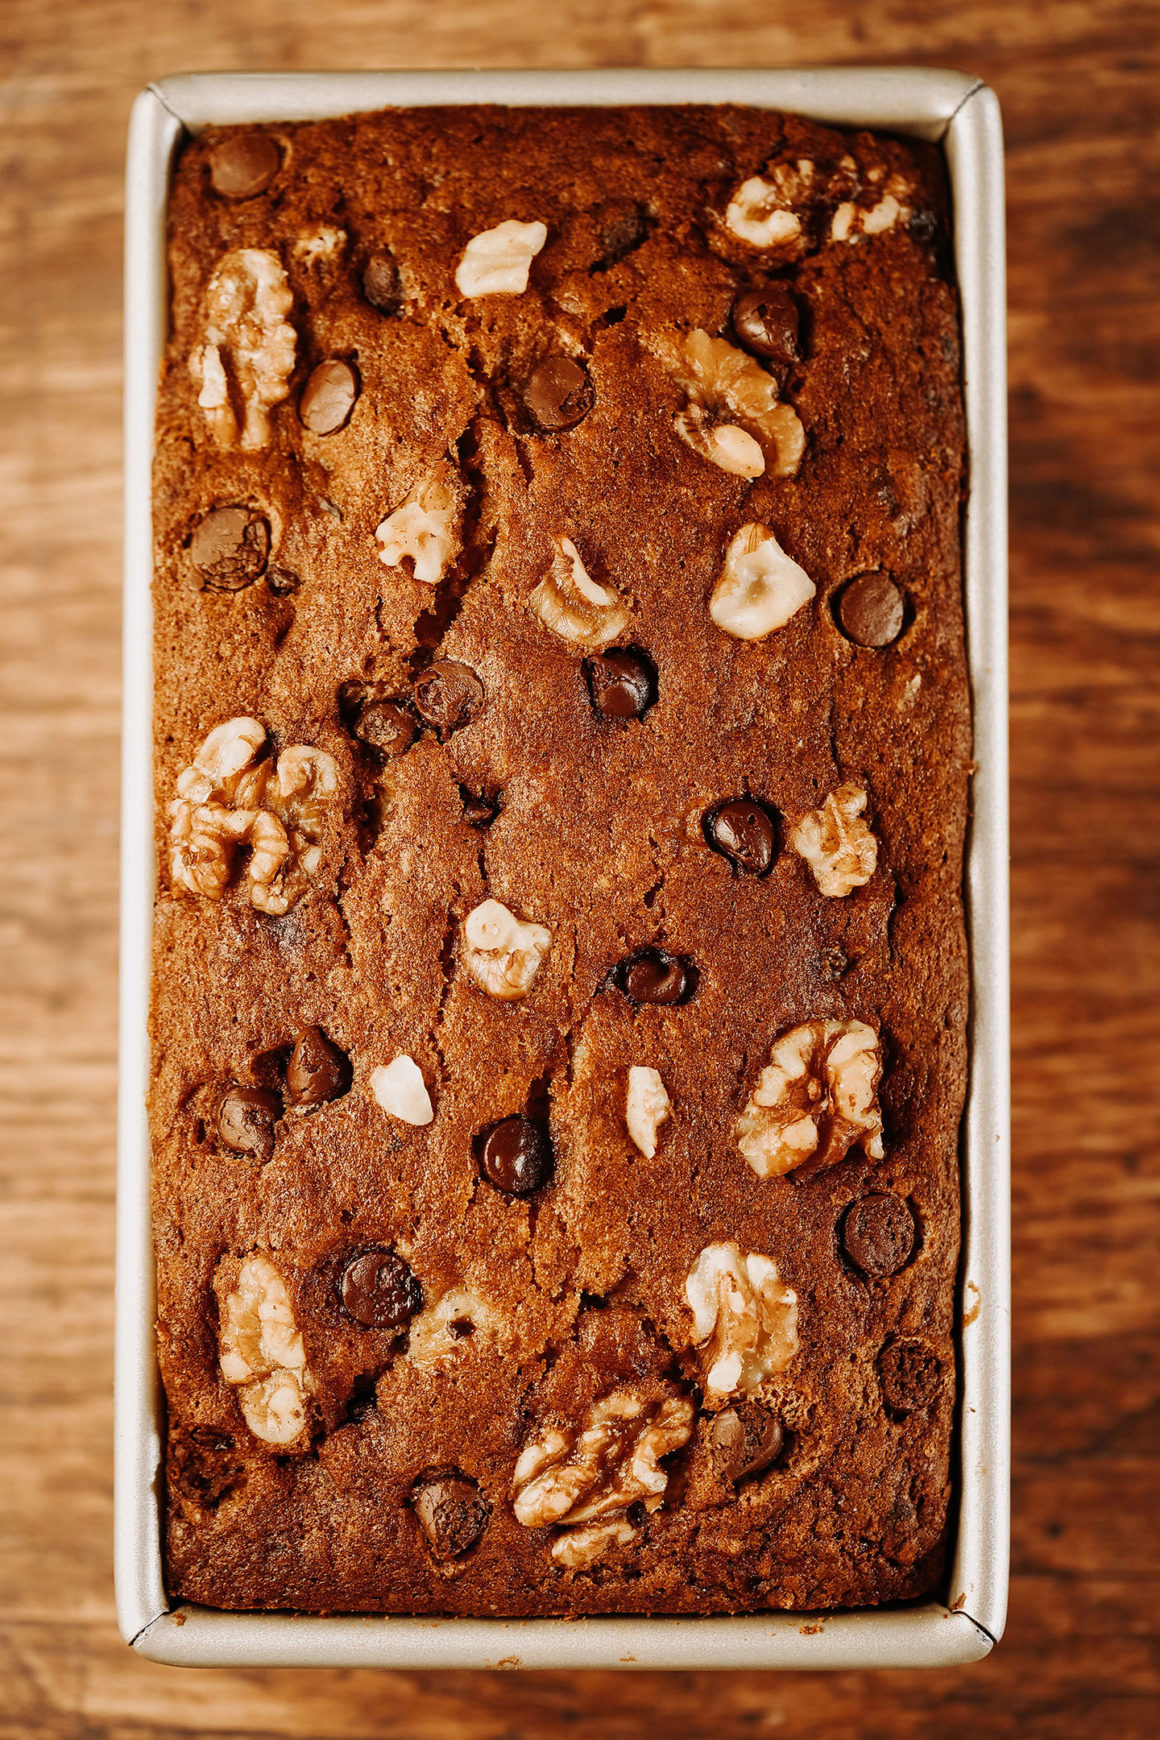 Banana Bread Loaf with Chocolate and Walnuts